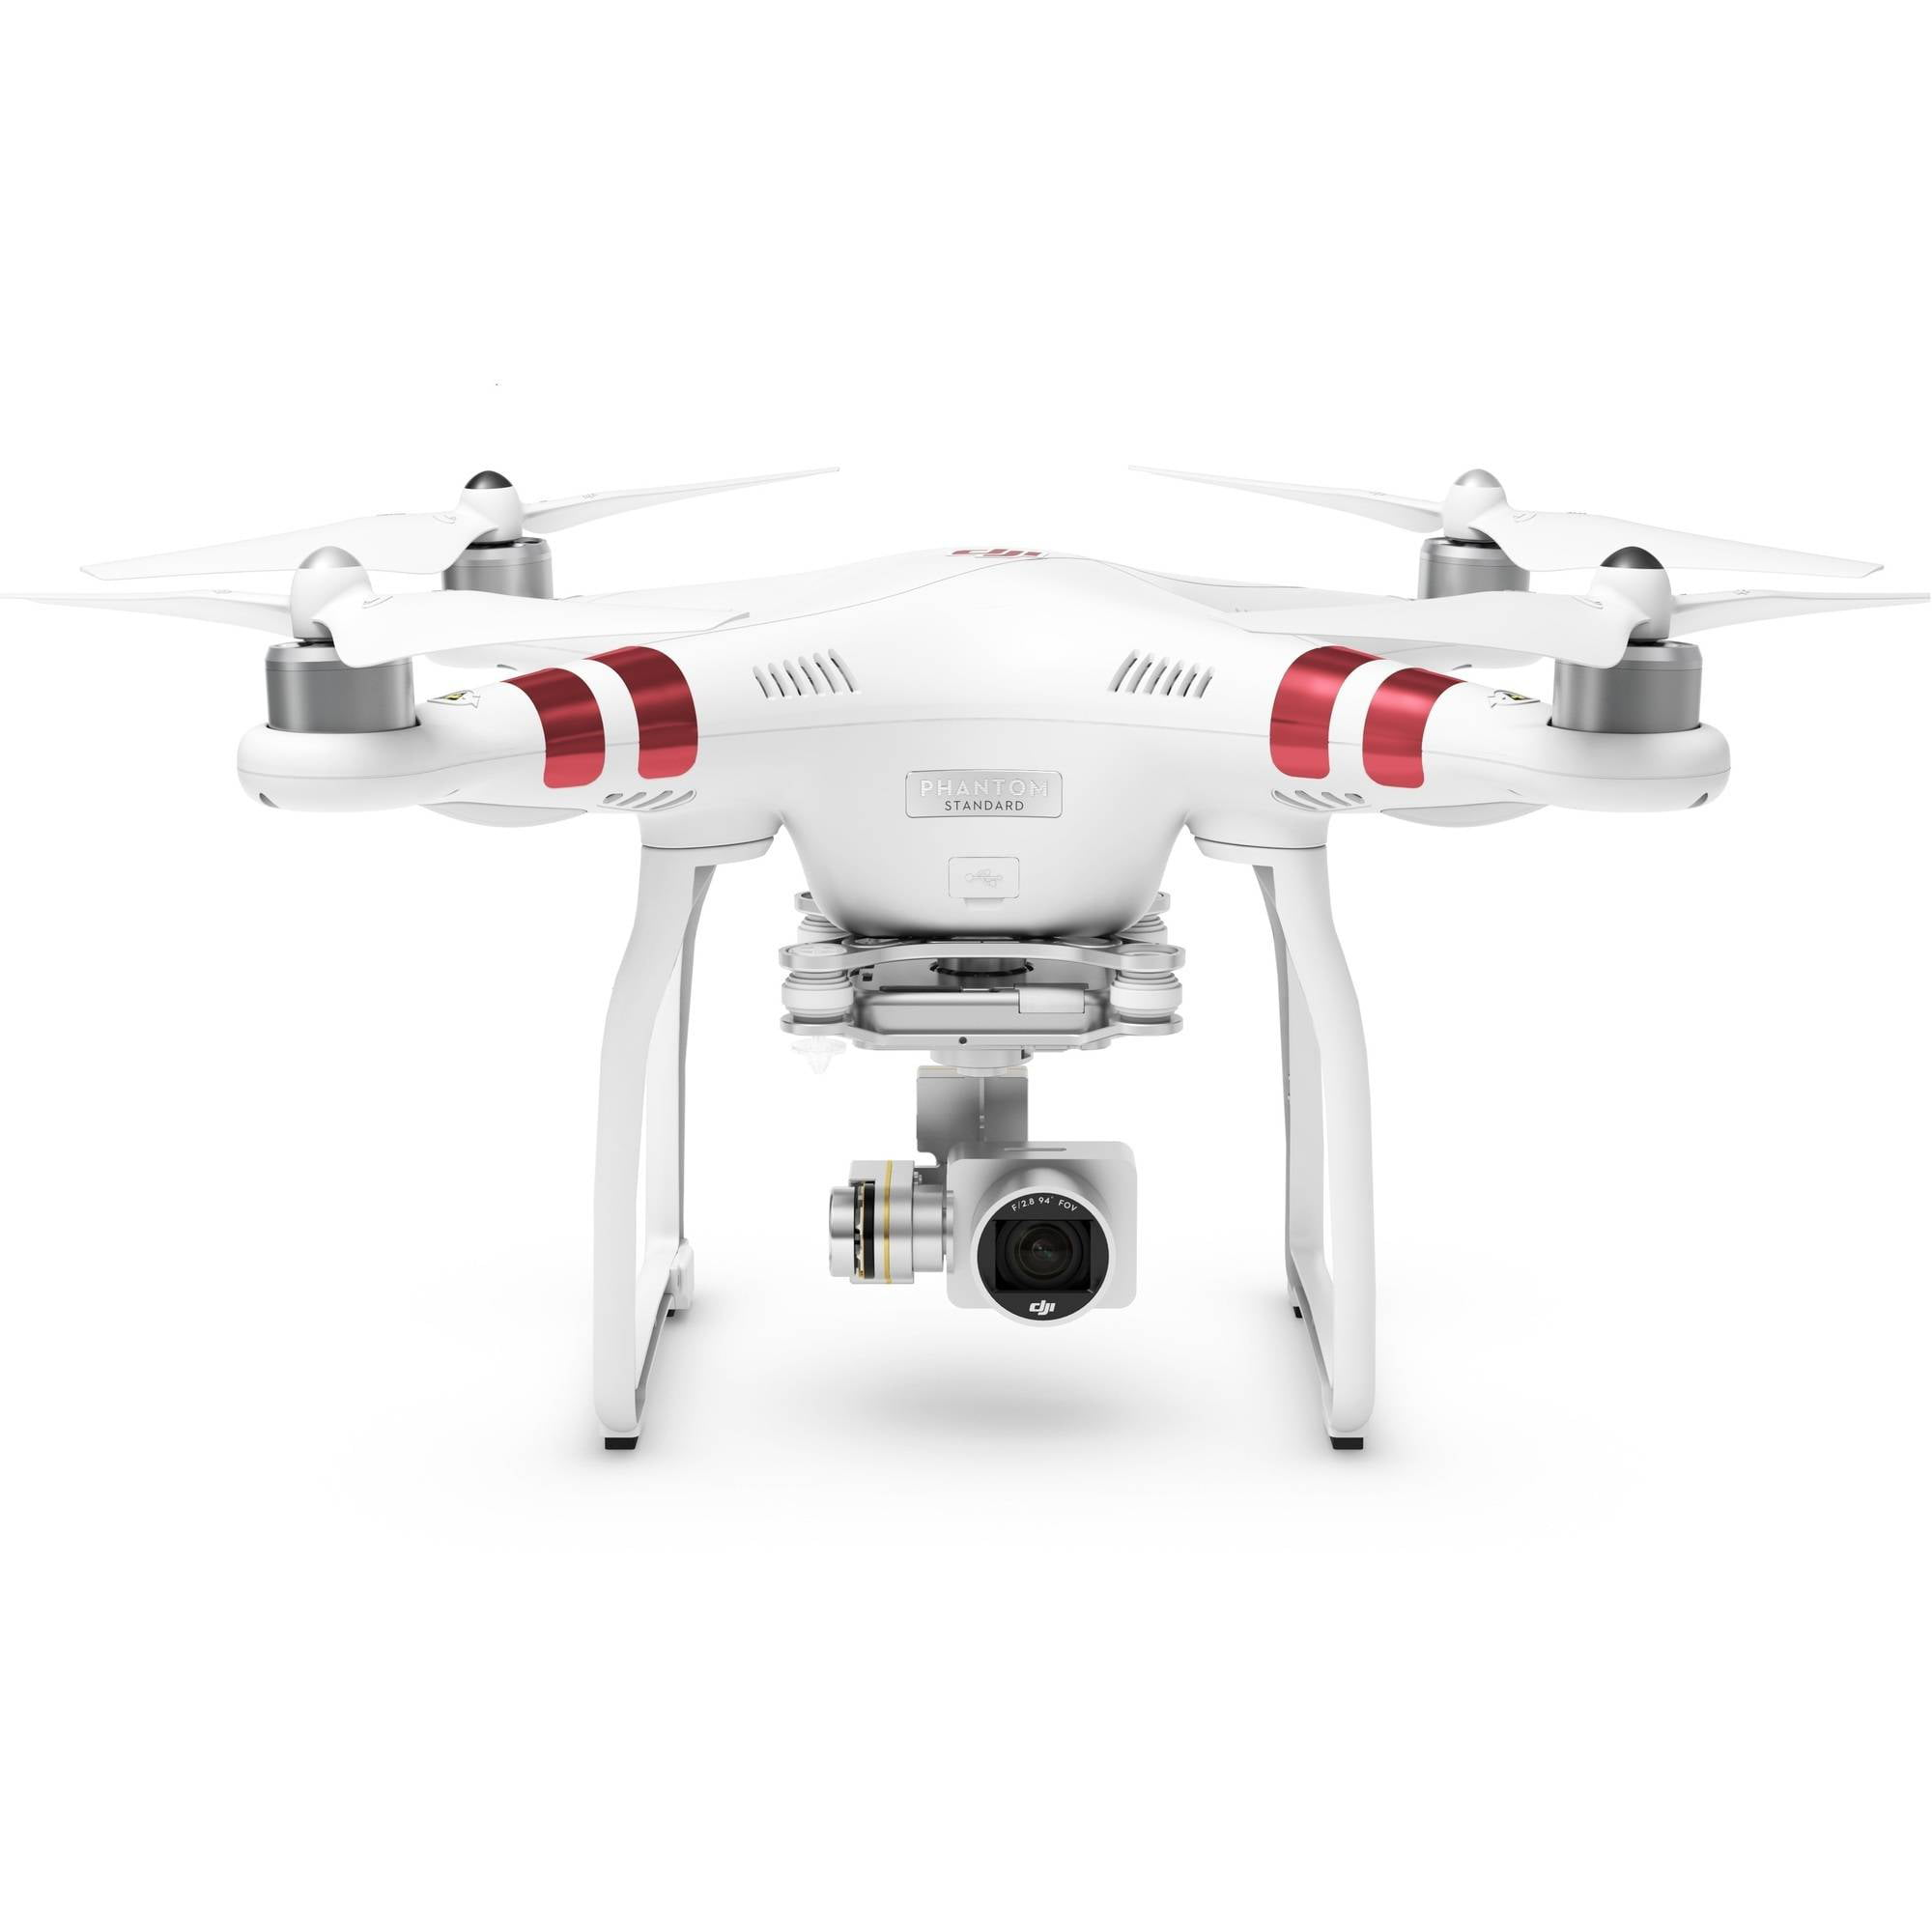 DJI Phantom 3 Standard Drone by DJI